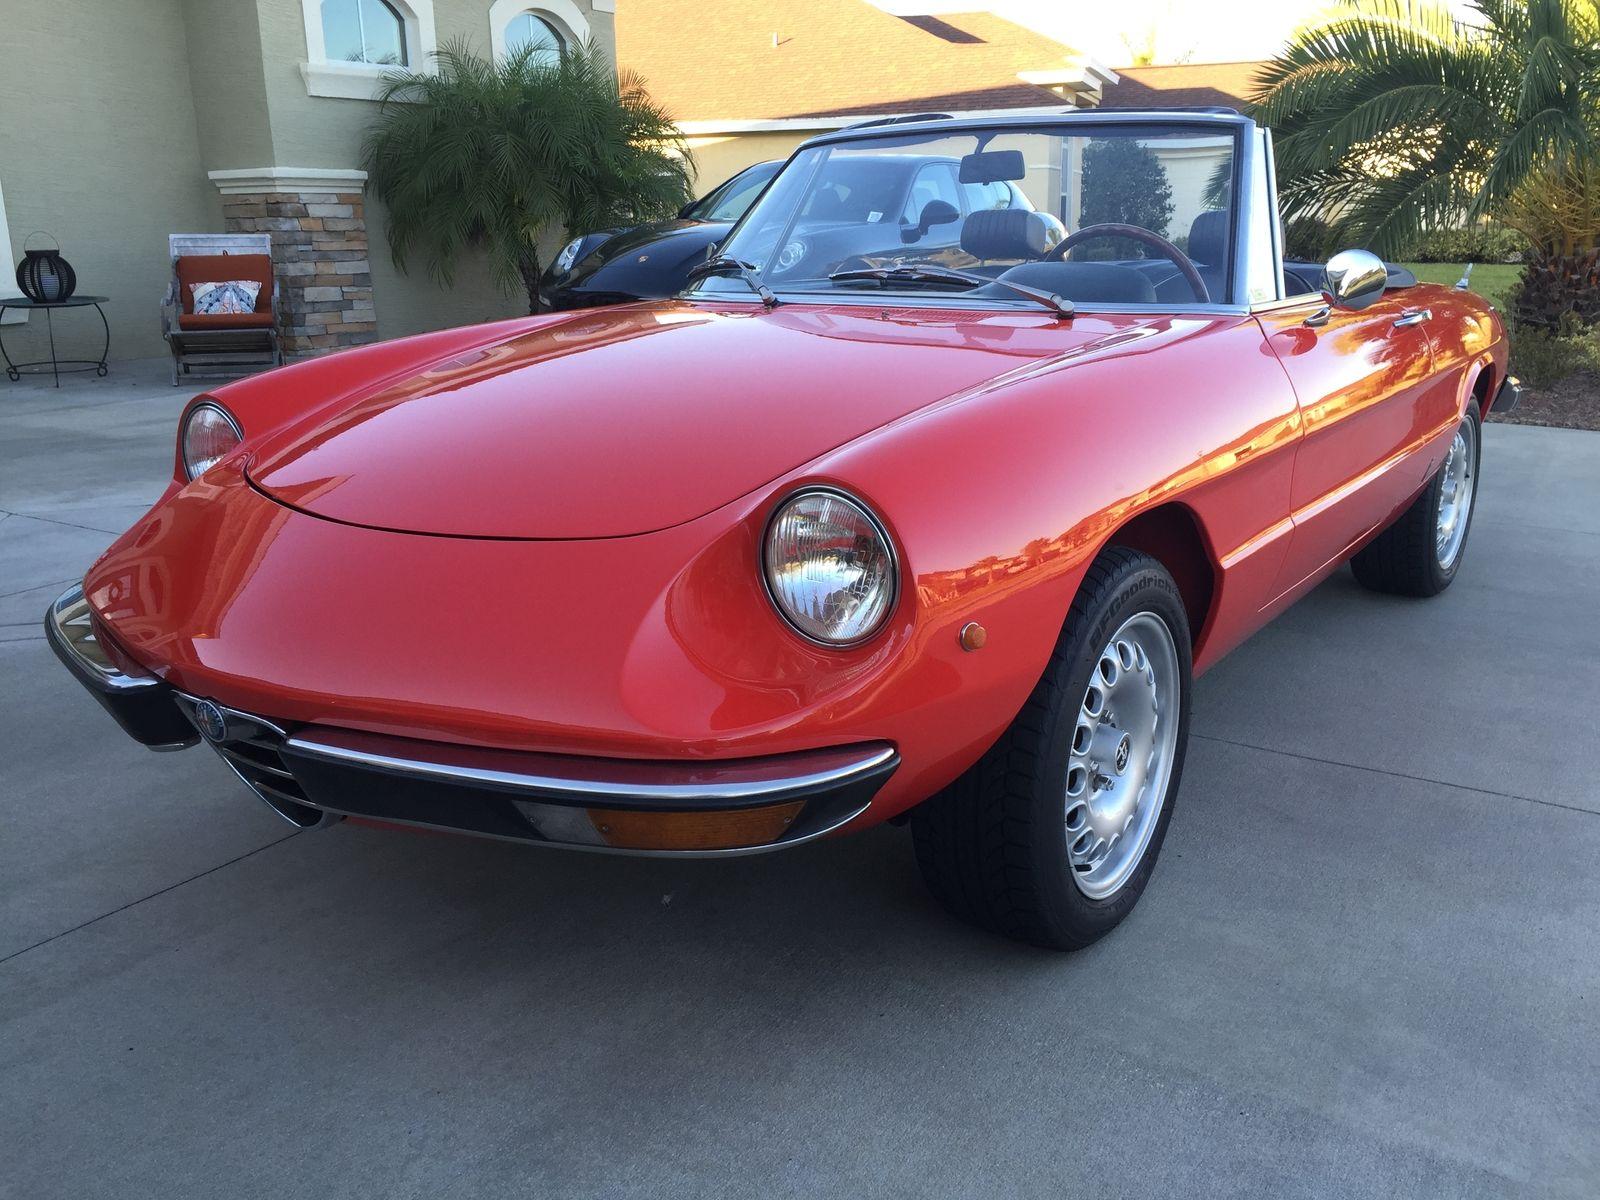 1973 alfa romeo spider fantastic condition rare euro model w duetto details classic alfa. Black Bedroom Furniture Sets. Home Design Ideas